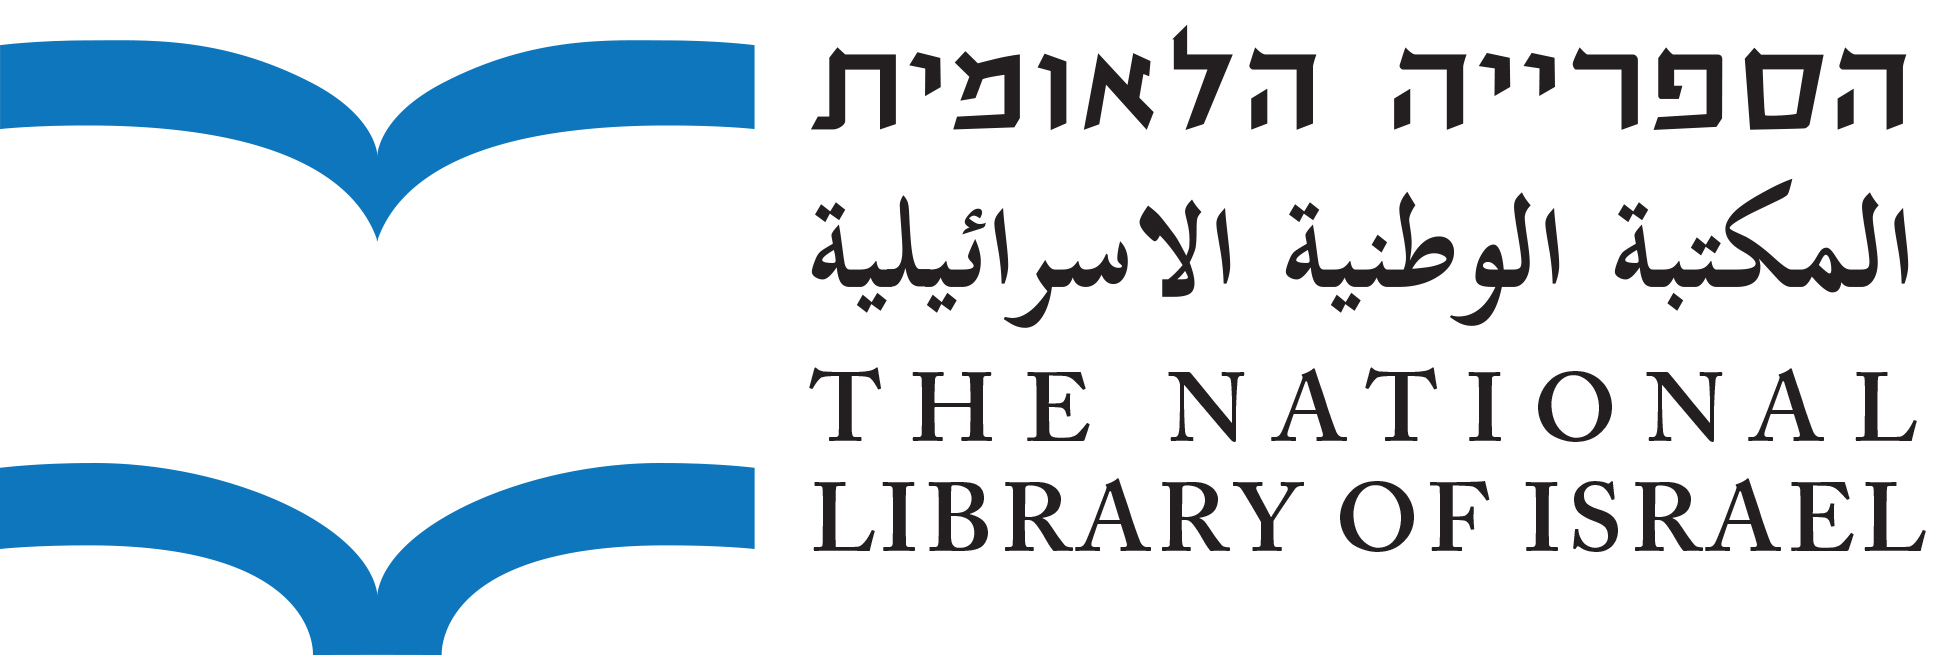 National Library of Israel logo